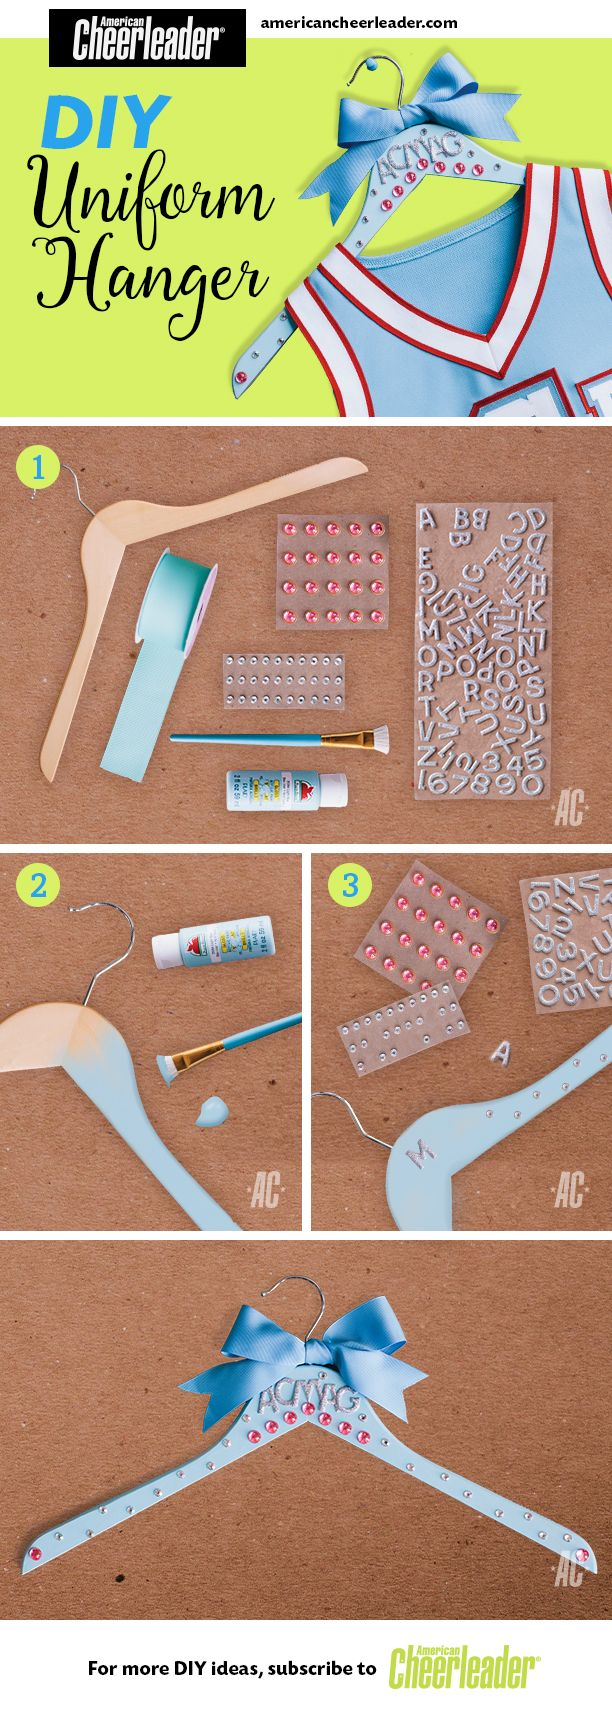 Keep that uniform in tip-top shape with this #DIY project.